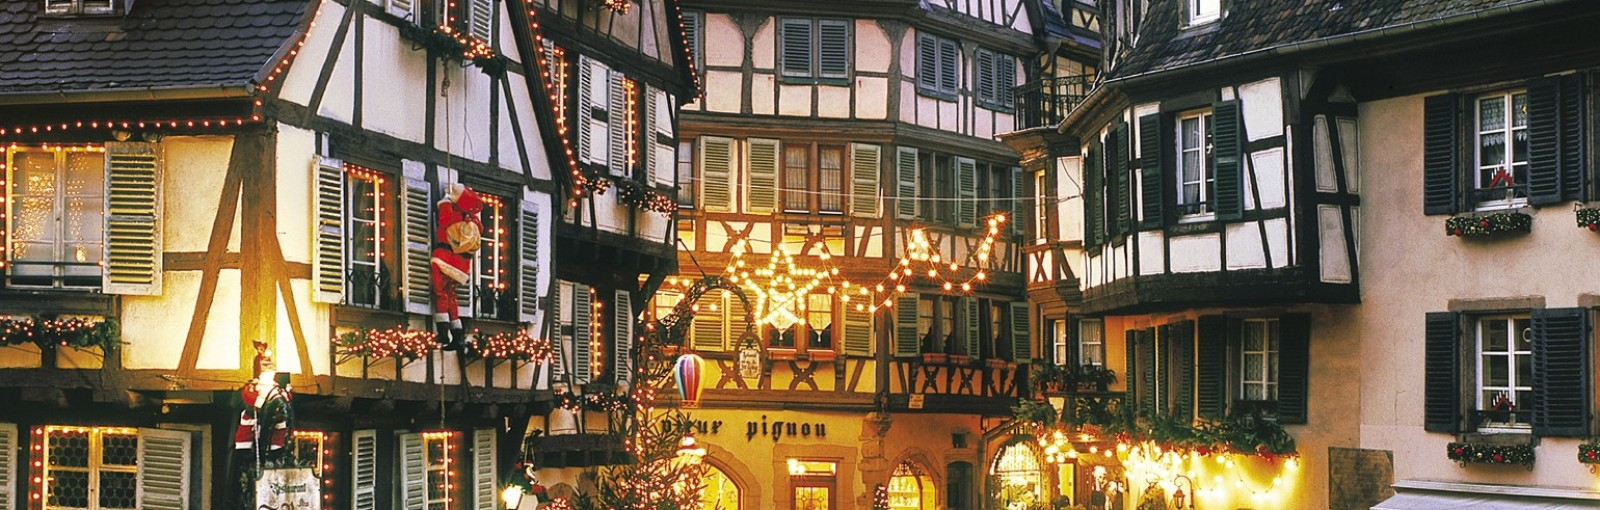 Tours Overnight tour in Alsace - ALSACE - TOURS REGIONALES